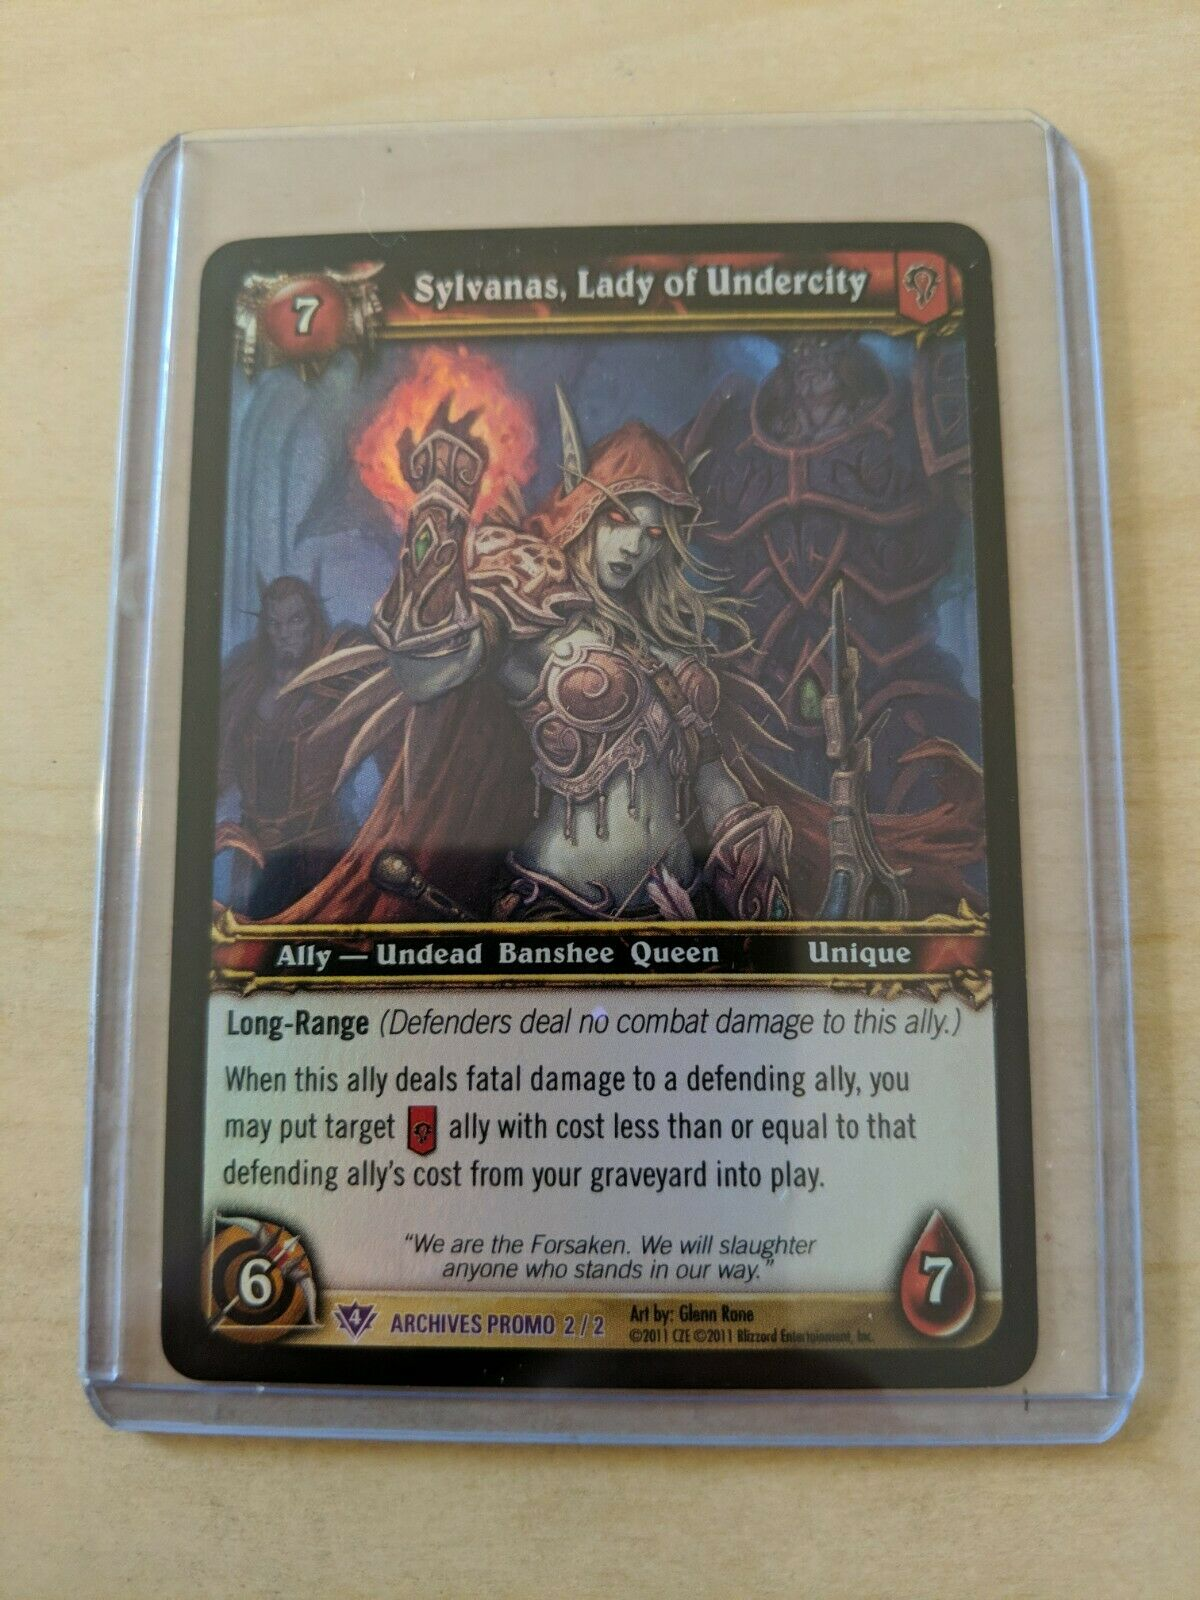 World of Warcraft TCG Sylvanas Lady of Undercity Archives Foil Promo Card 2/2